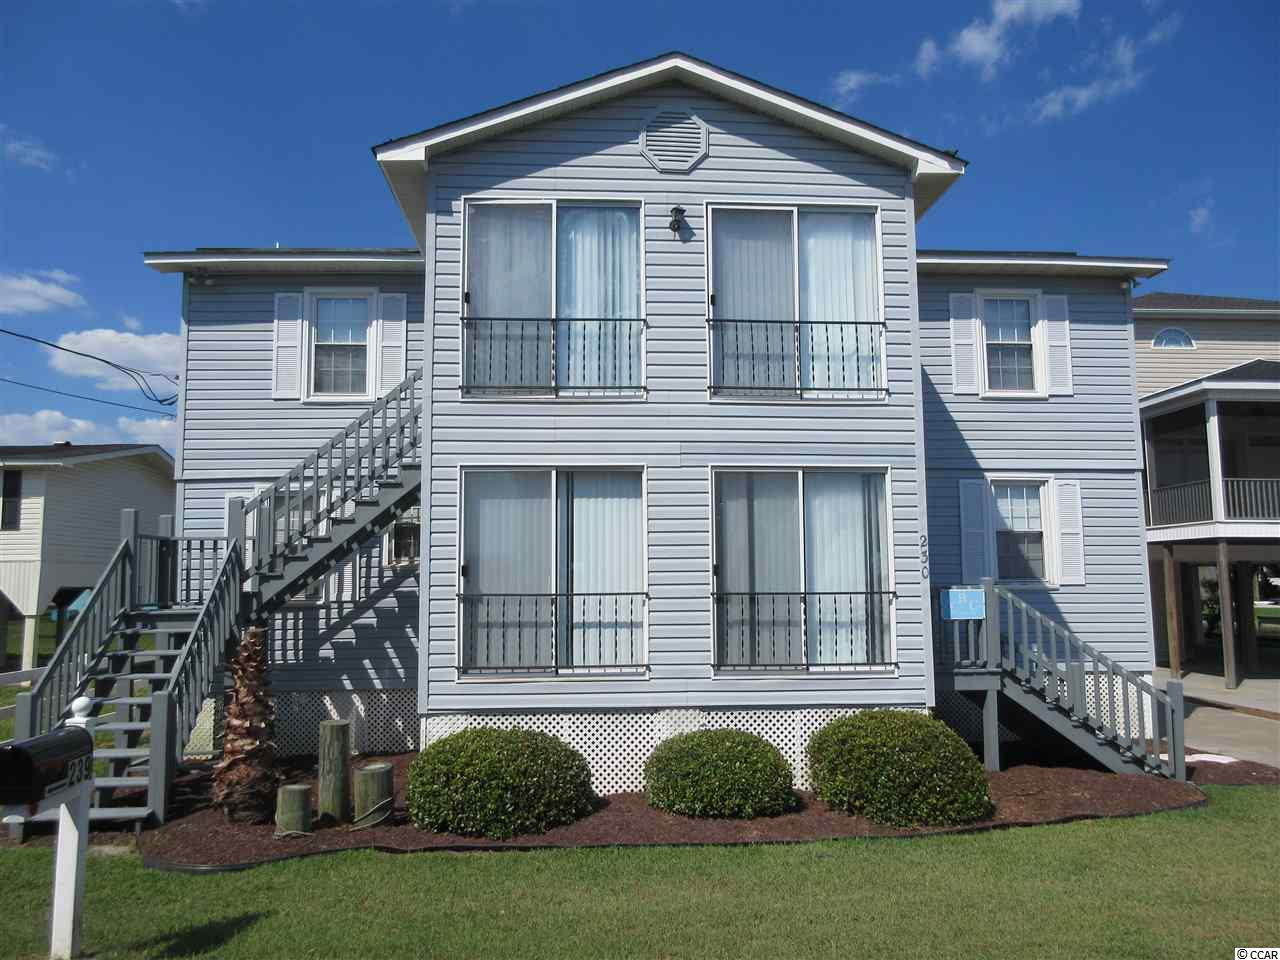 Unique opportunity to own a duplex just two blocks from the ocean. Property is divided into an upstairs and downstairs unit which both consist of 3-bedrooms, 2-bathroom. Rent both units as an investment property or use one & rent the other to offset expenses. Contact the listing agent, or your Realtor, for more details or to arrange a showing.